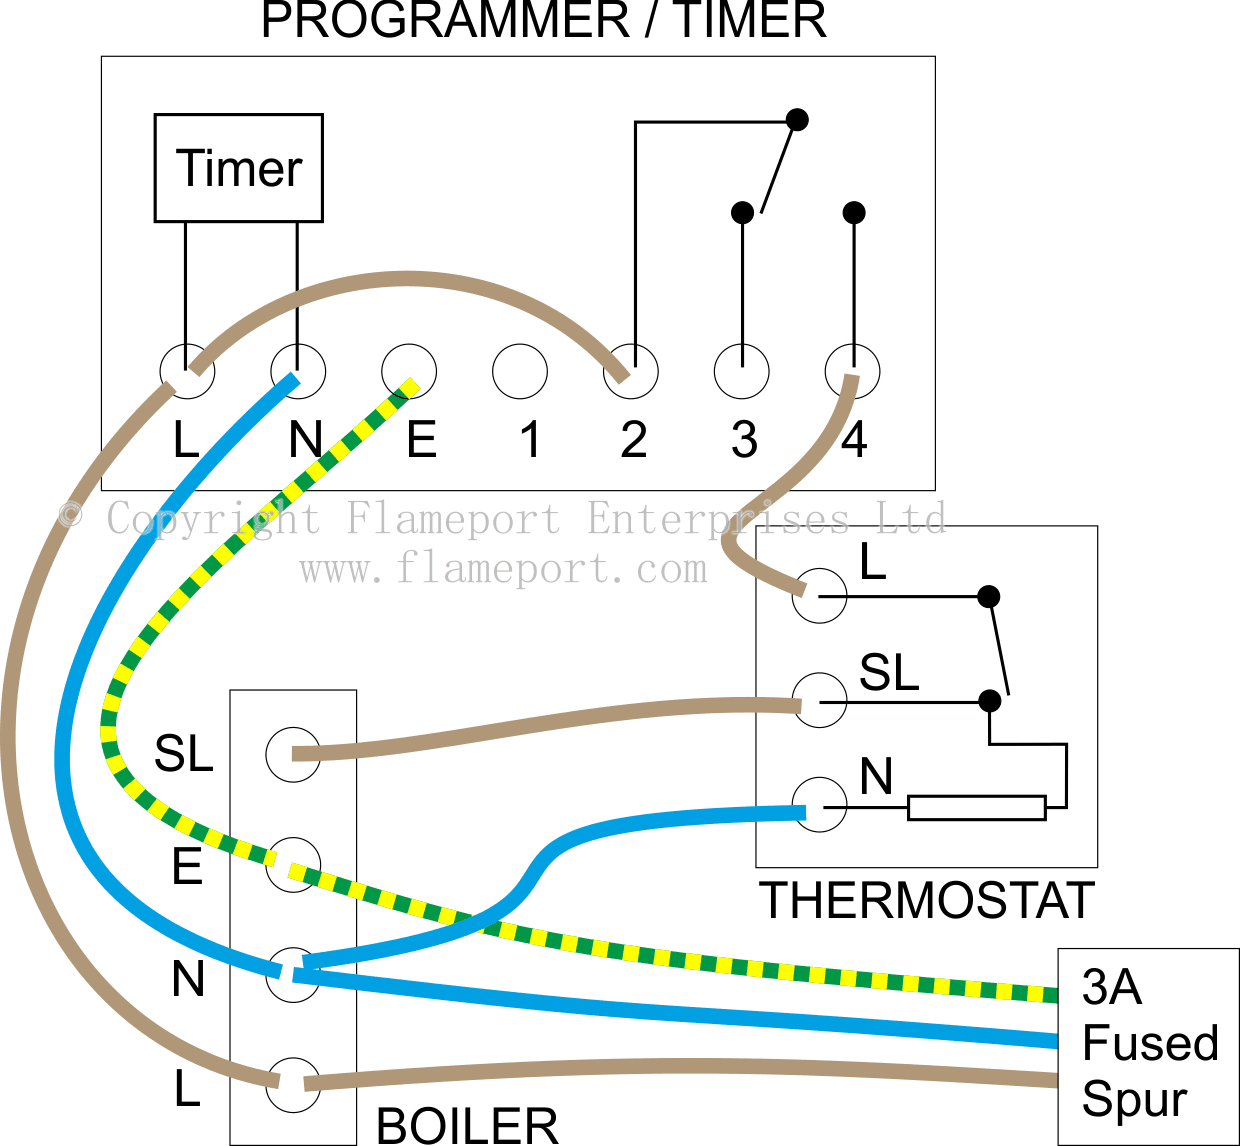 cleaver brooks wiring diagram Download-IET FORUMS BOILER WIRING THE INSTITUTION OF ENGINEERING AND 9-h